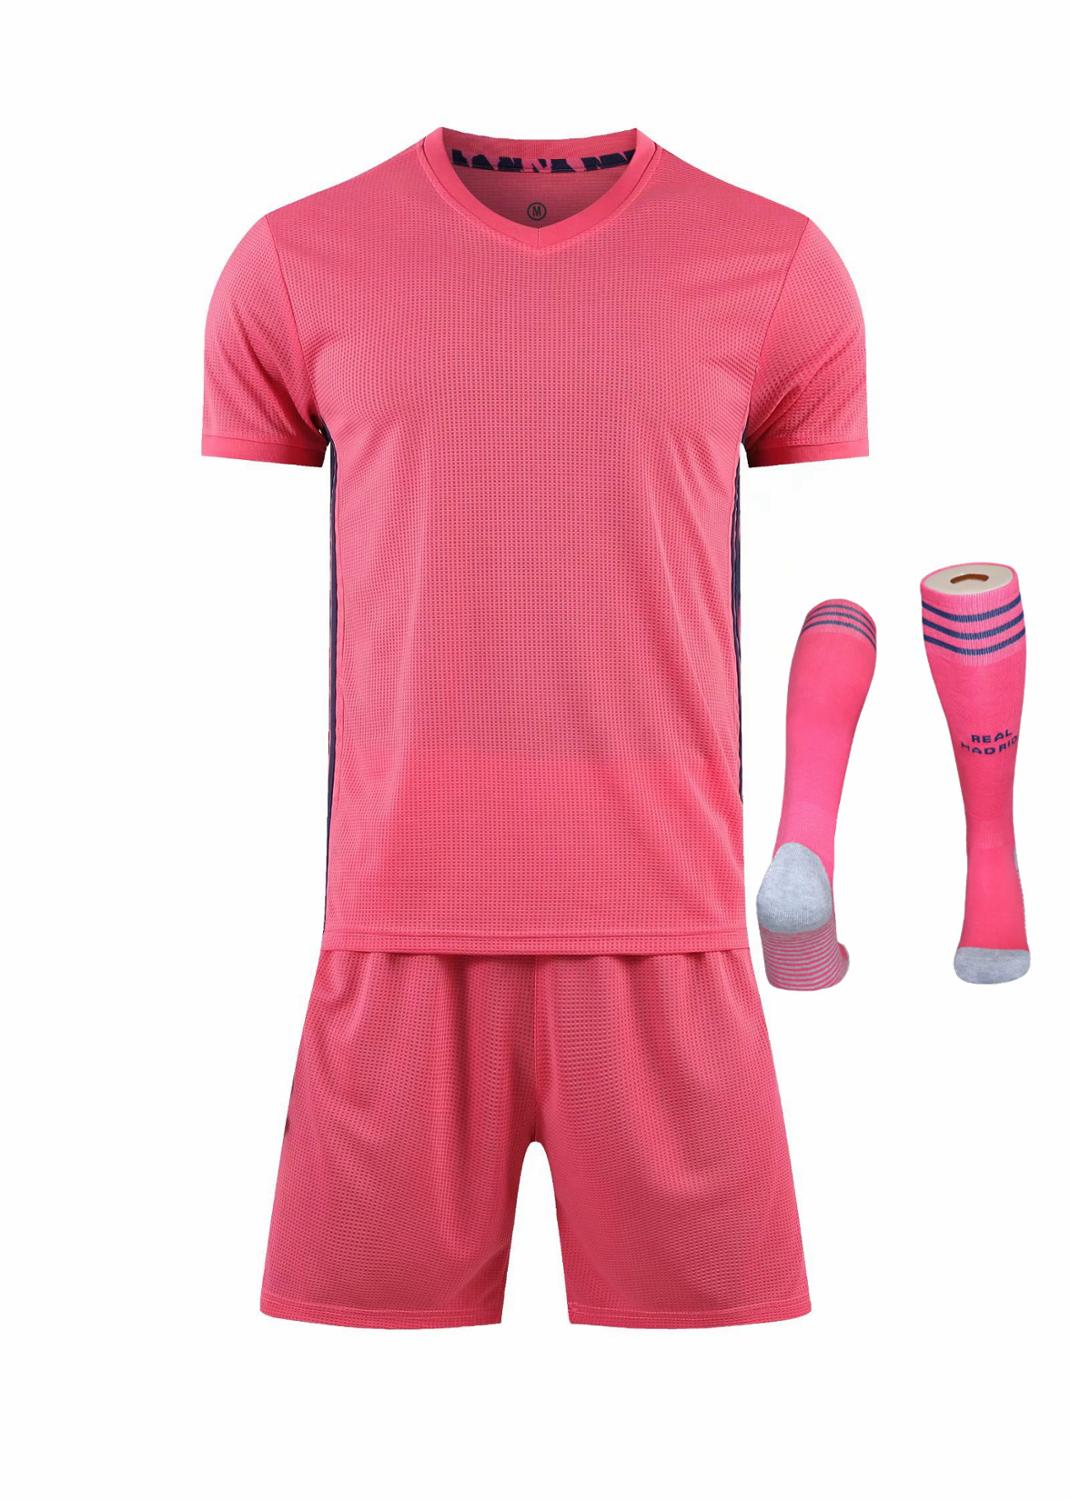 Children Sets football uniforms boys and girls sports kids youth training suits blank custom print soccer set with socks 25